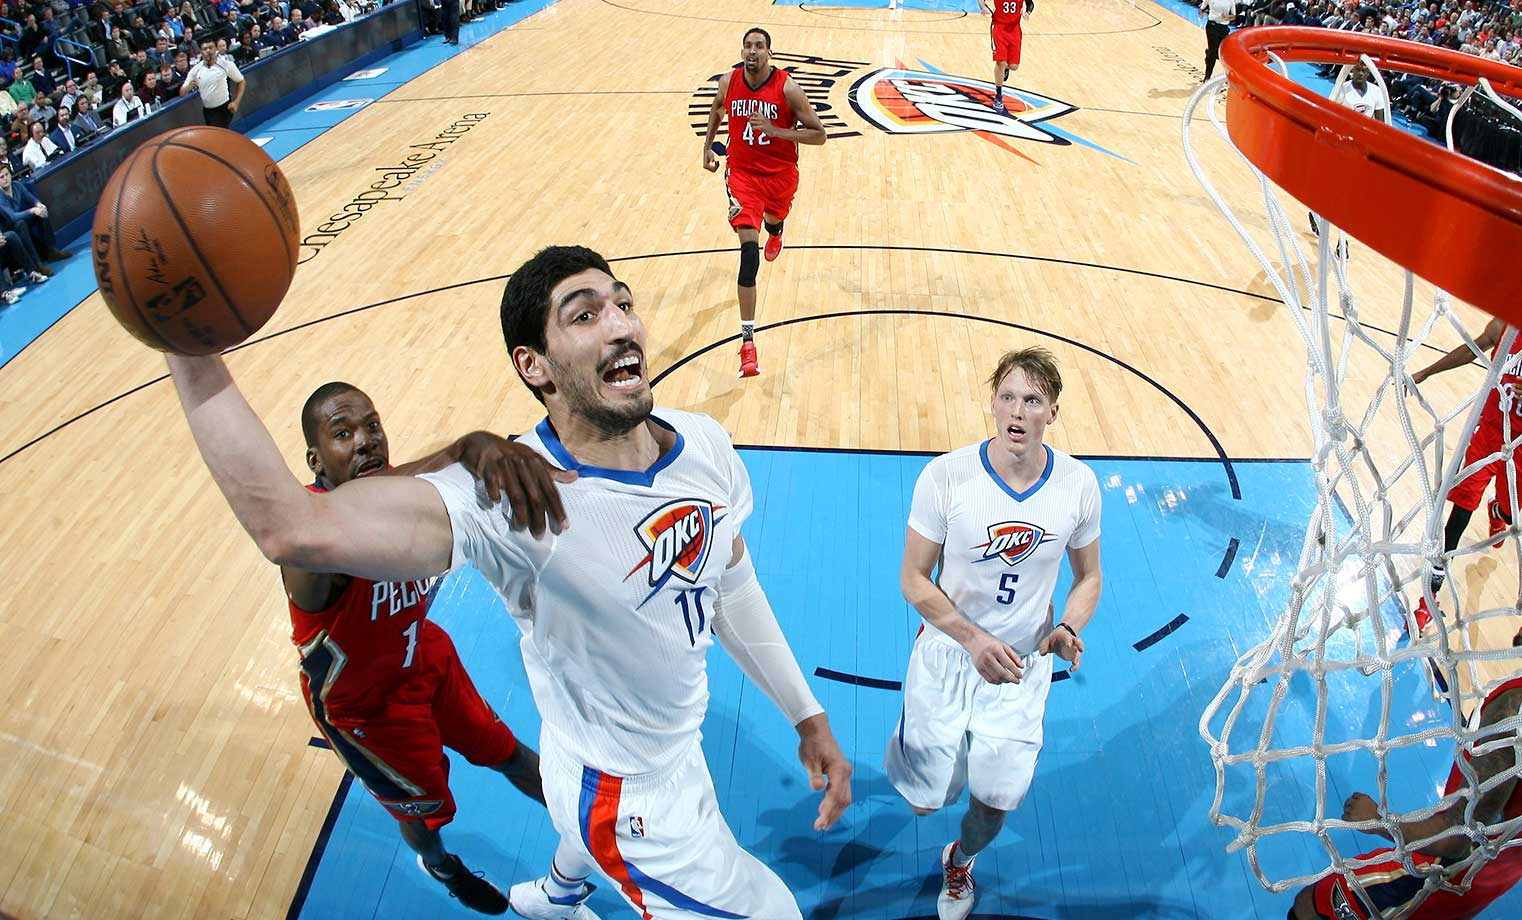 Here are some of the images that caught our eye on the sports night of Feb. 11, starting with  Enes Kanter of the Oklahoma City Thunder being held down somewhat by a New Orleans defender.